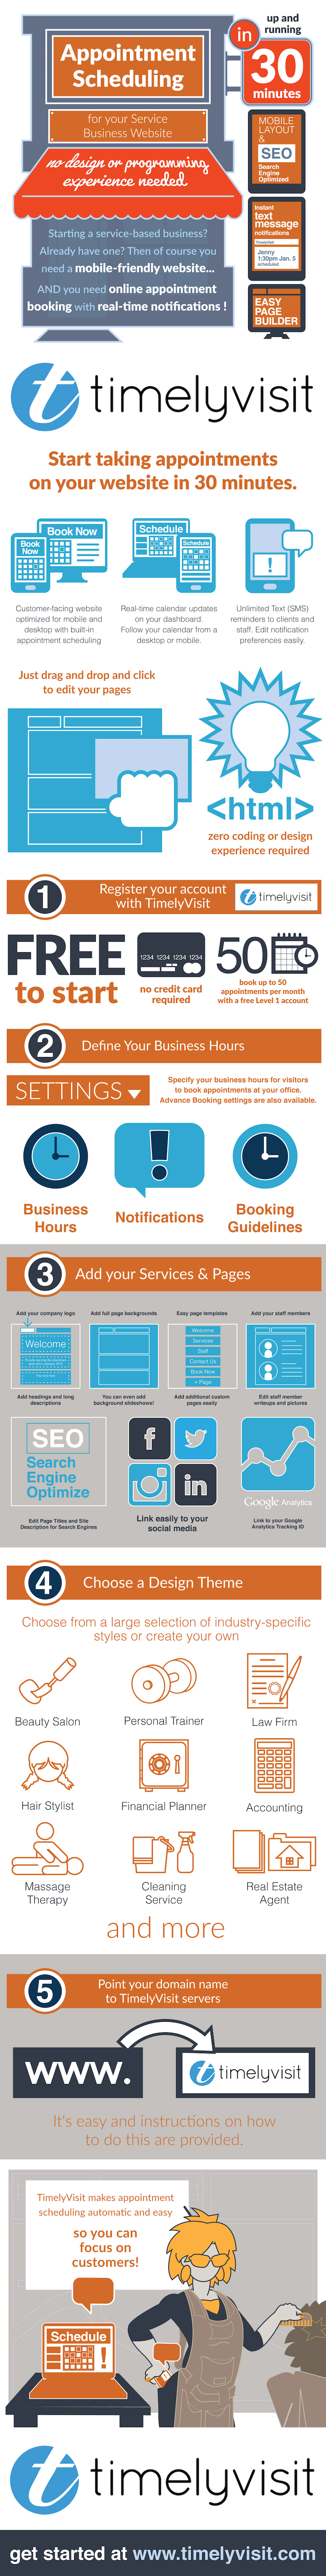 How To Create A Website For Your Service Business In 30 Minutes (infographic)